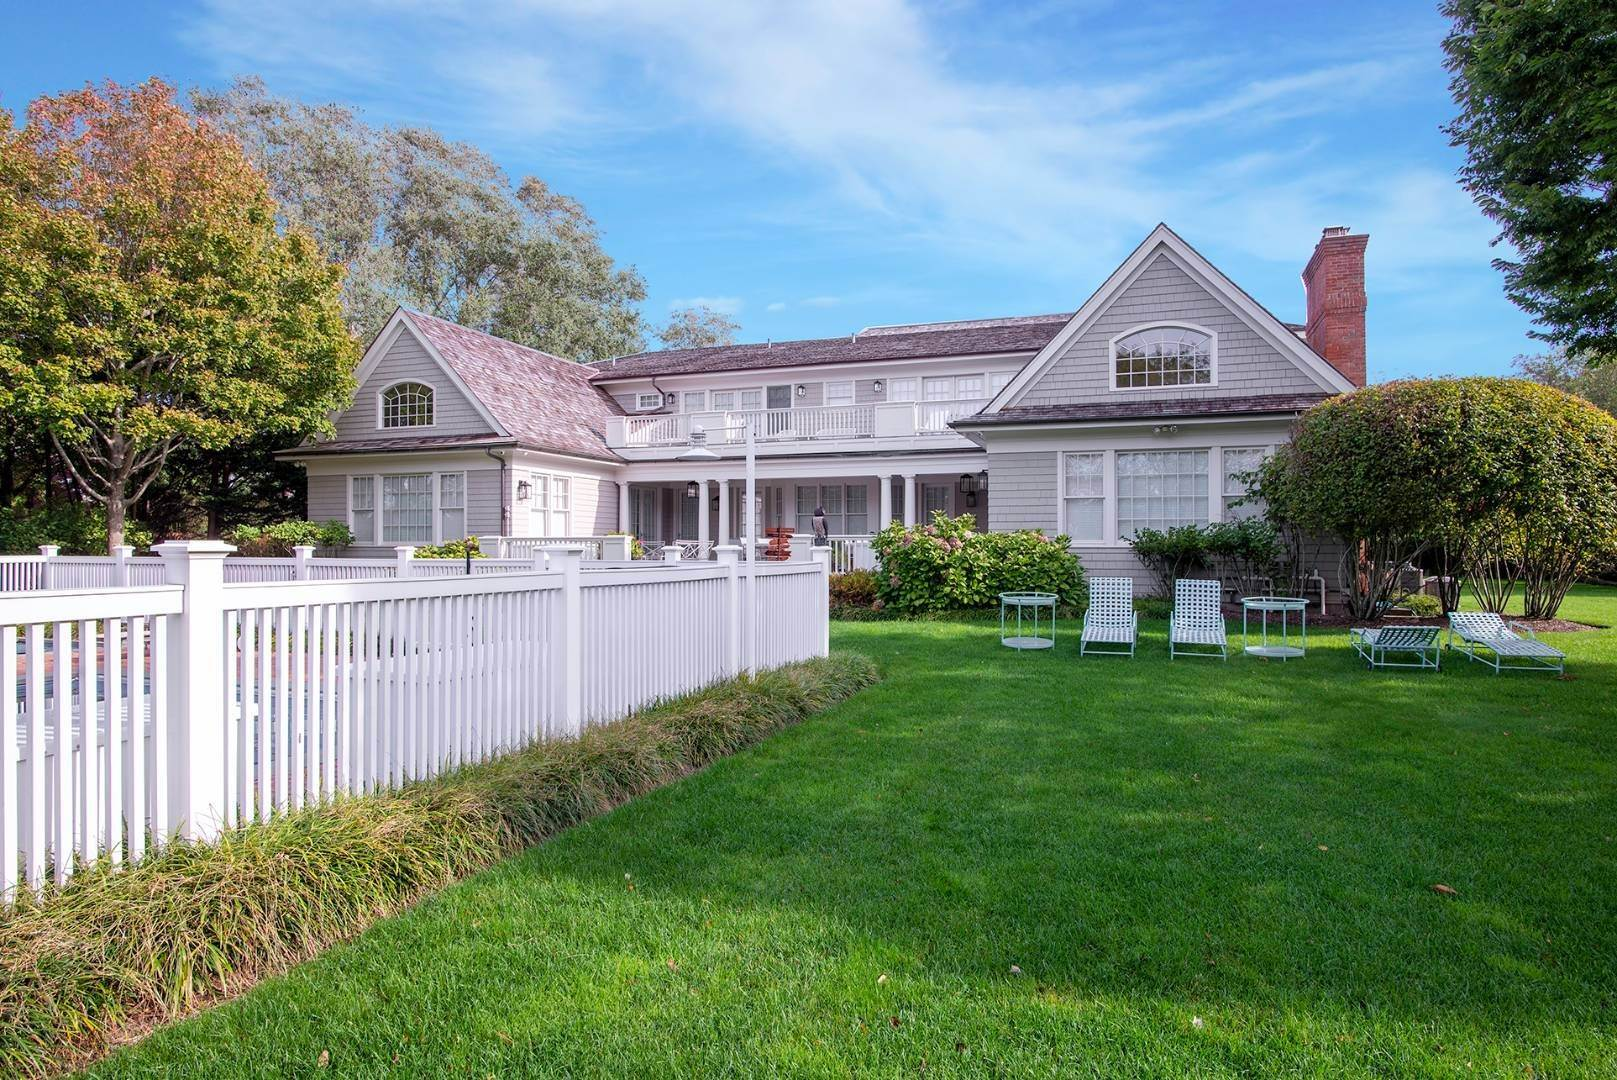 21. Single Family Home at Sagaponack Sagaponack Village, NY 11962